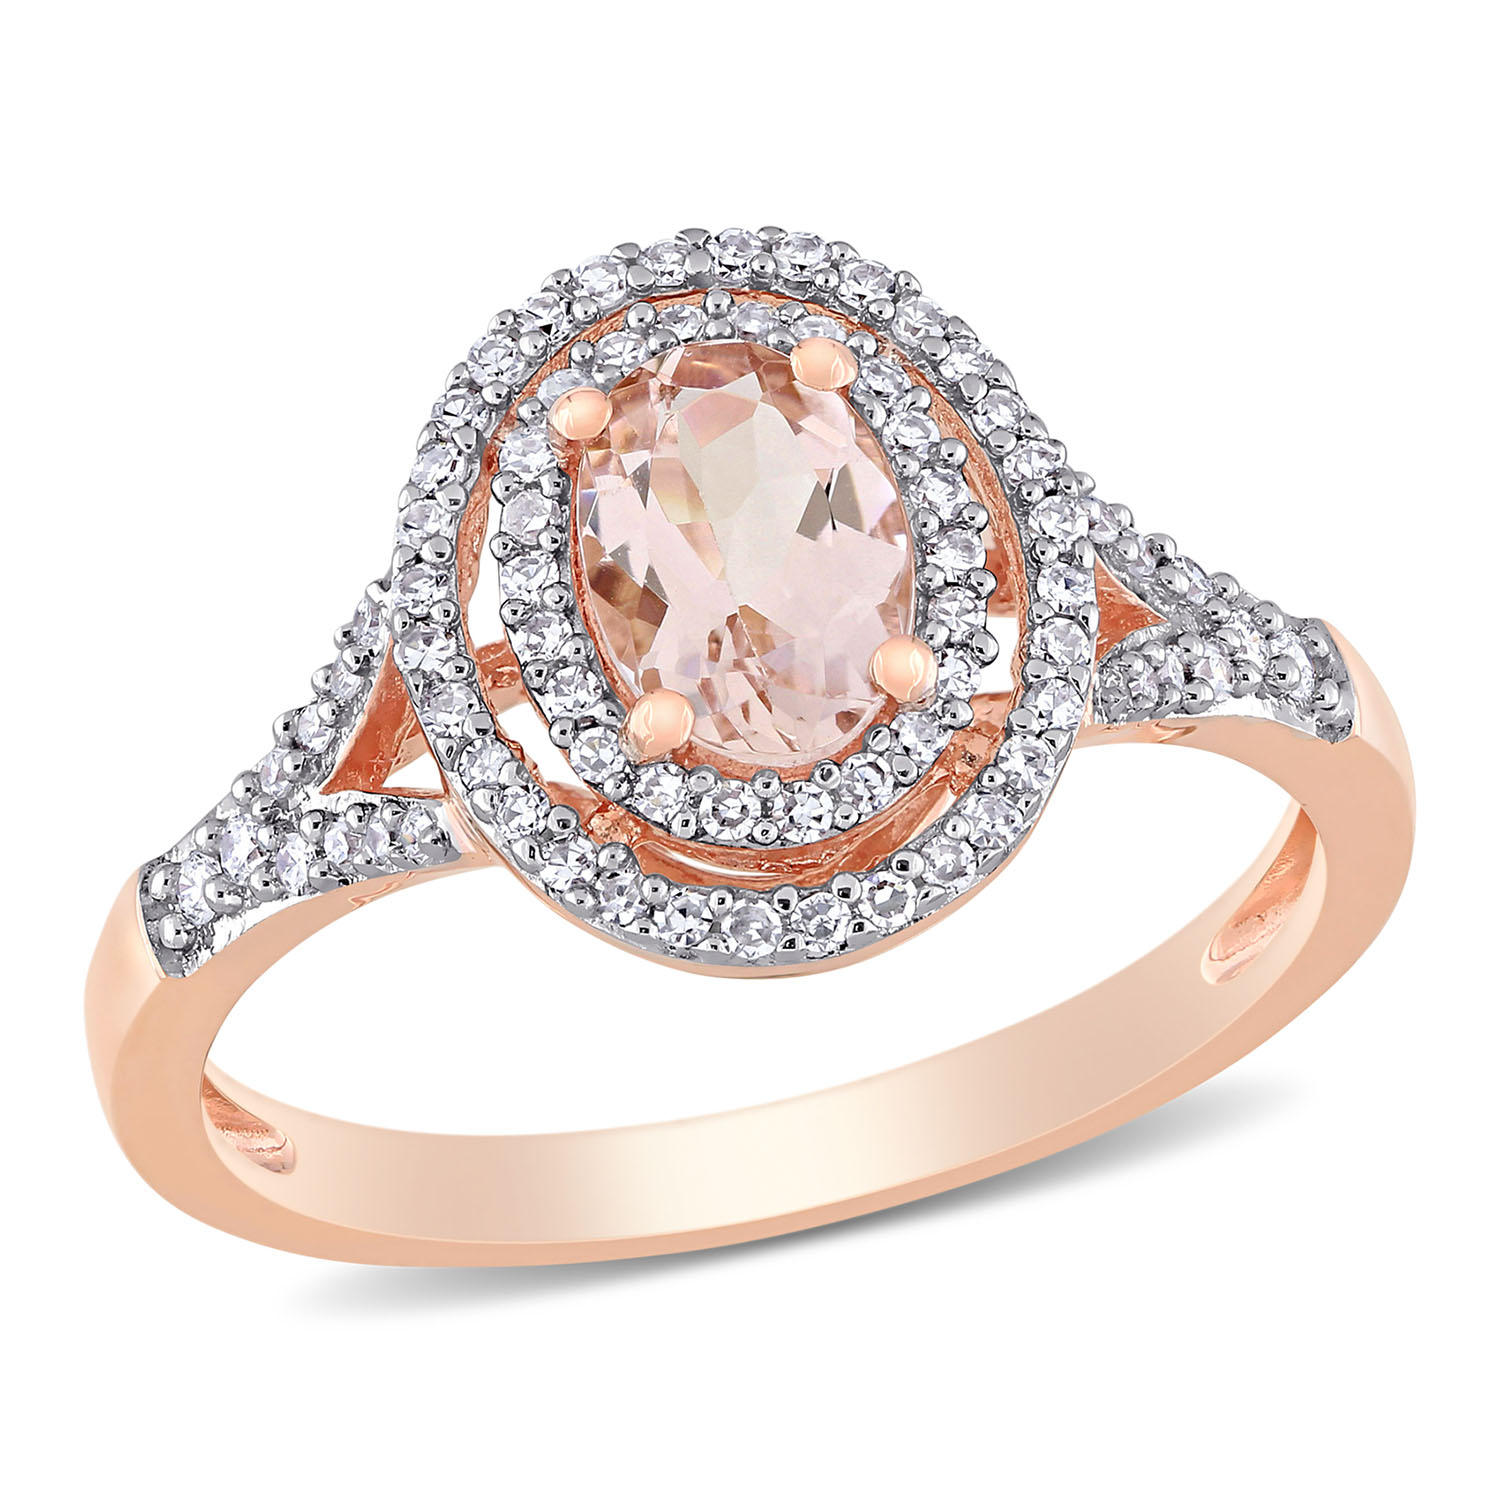 T.W. Morganite 0.25 CT. Diamond Double Halo Engagement Ring in 14K Rose Gold